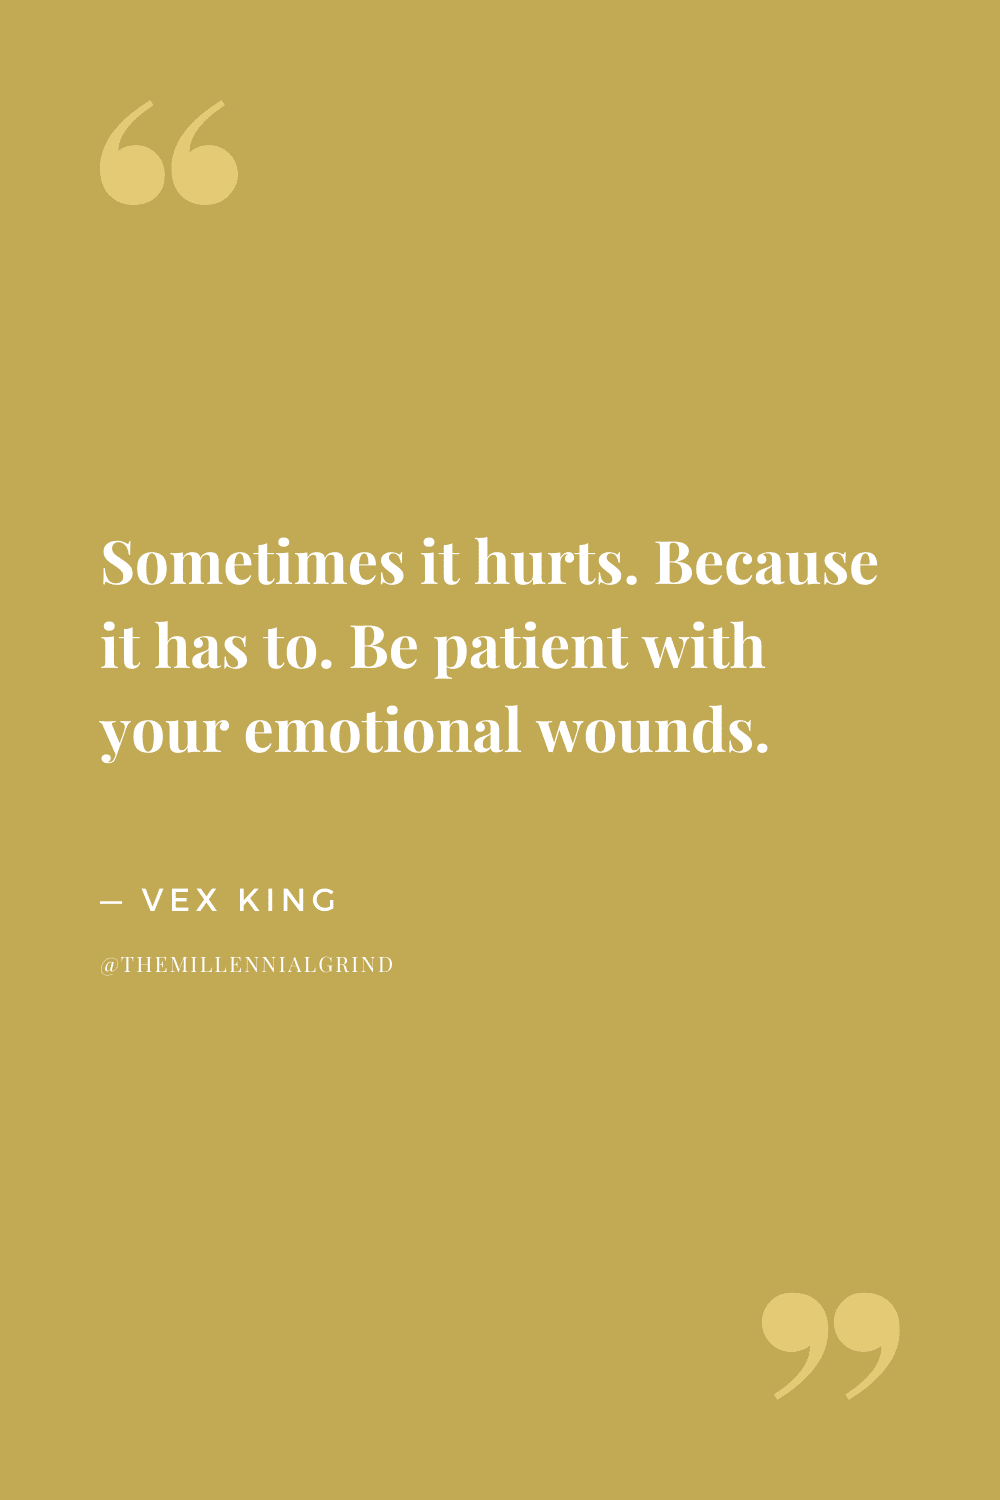 Quotes from Healing Is the New High by Vex King